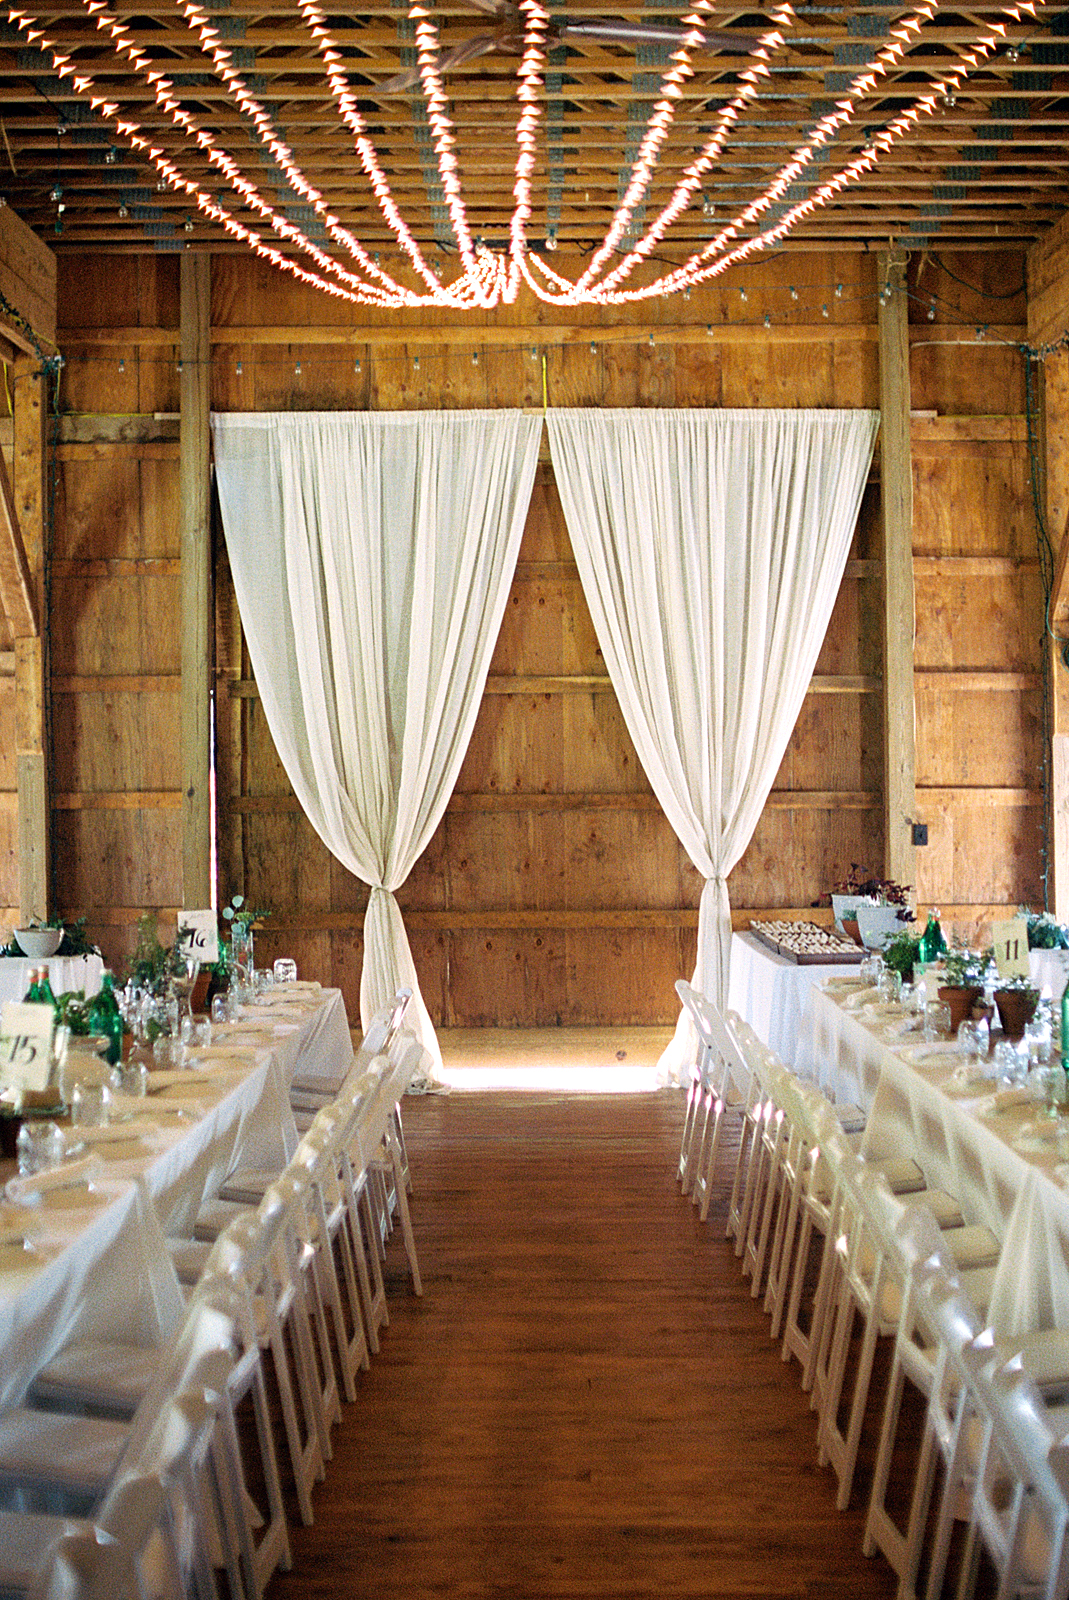 rachel elijah wedding barn curtains